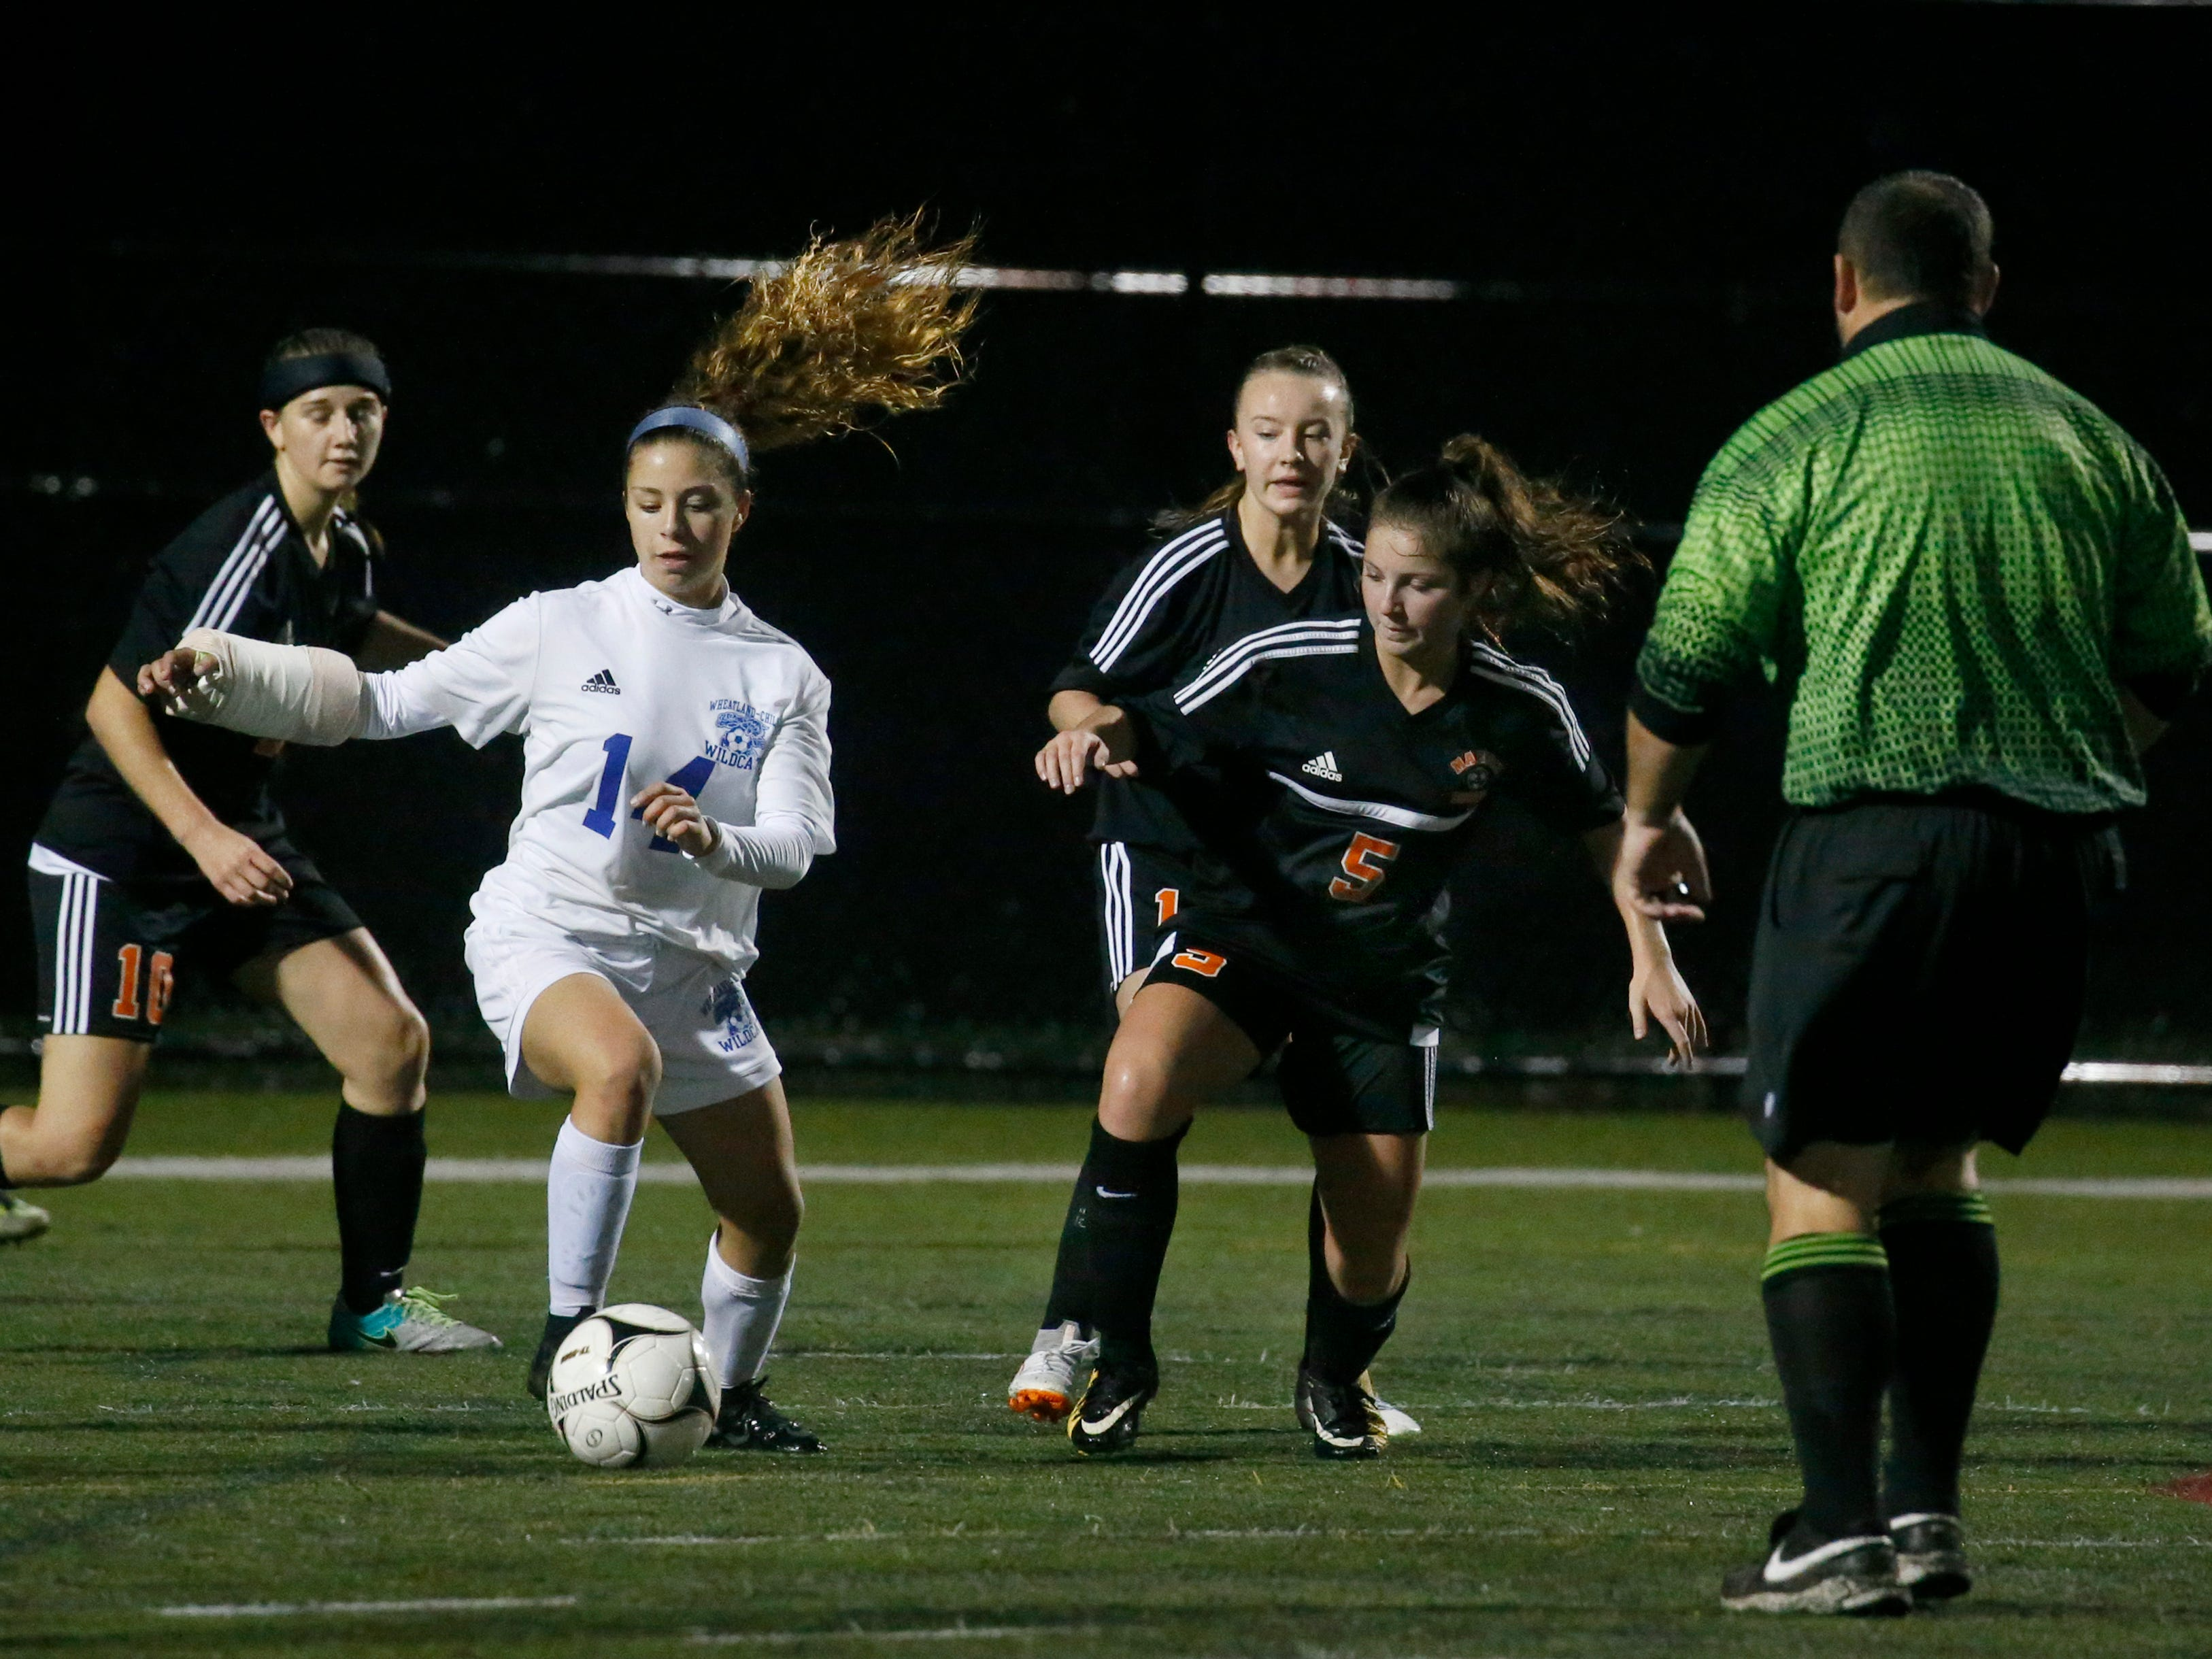 Wheatland-Chili's Niyah Rosado dribbles away from Marion's Beata Hanhisalo in the first half at Penfield High School.